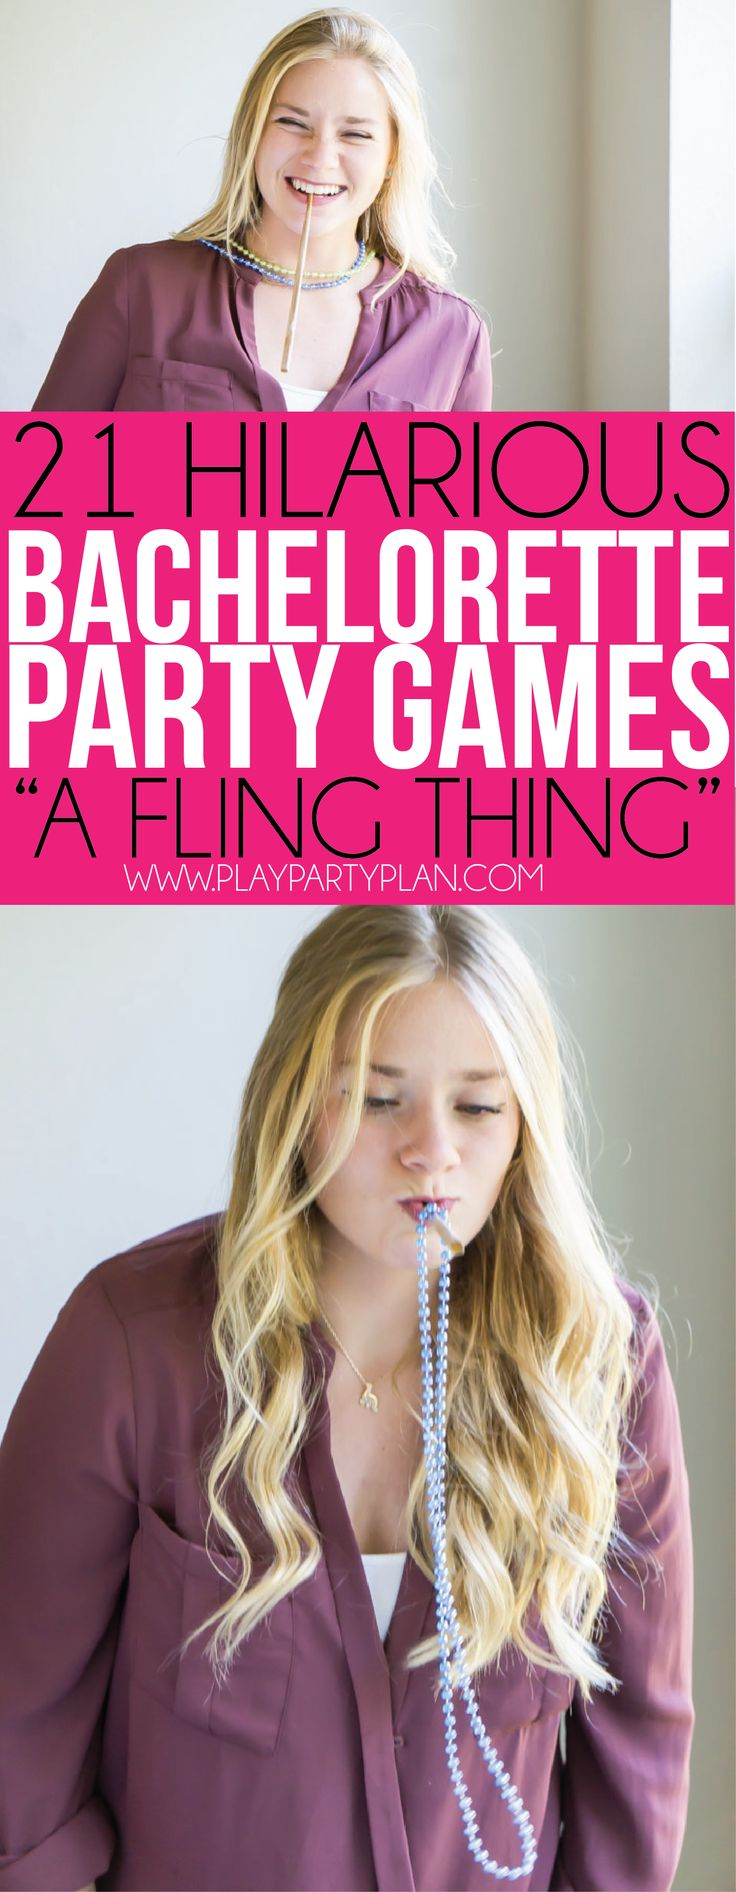 Try these fun bachelorette party games like hooking necklaces around your neck